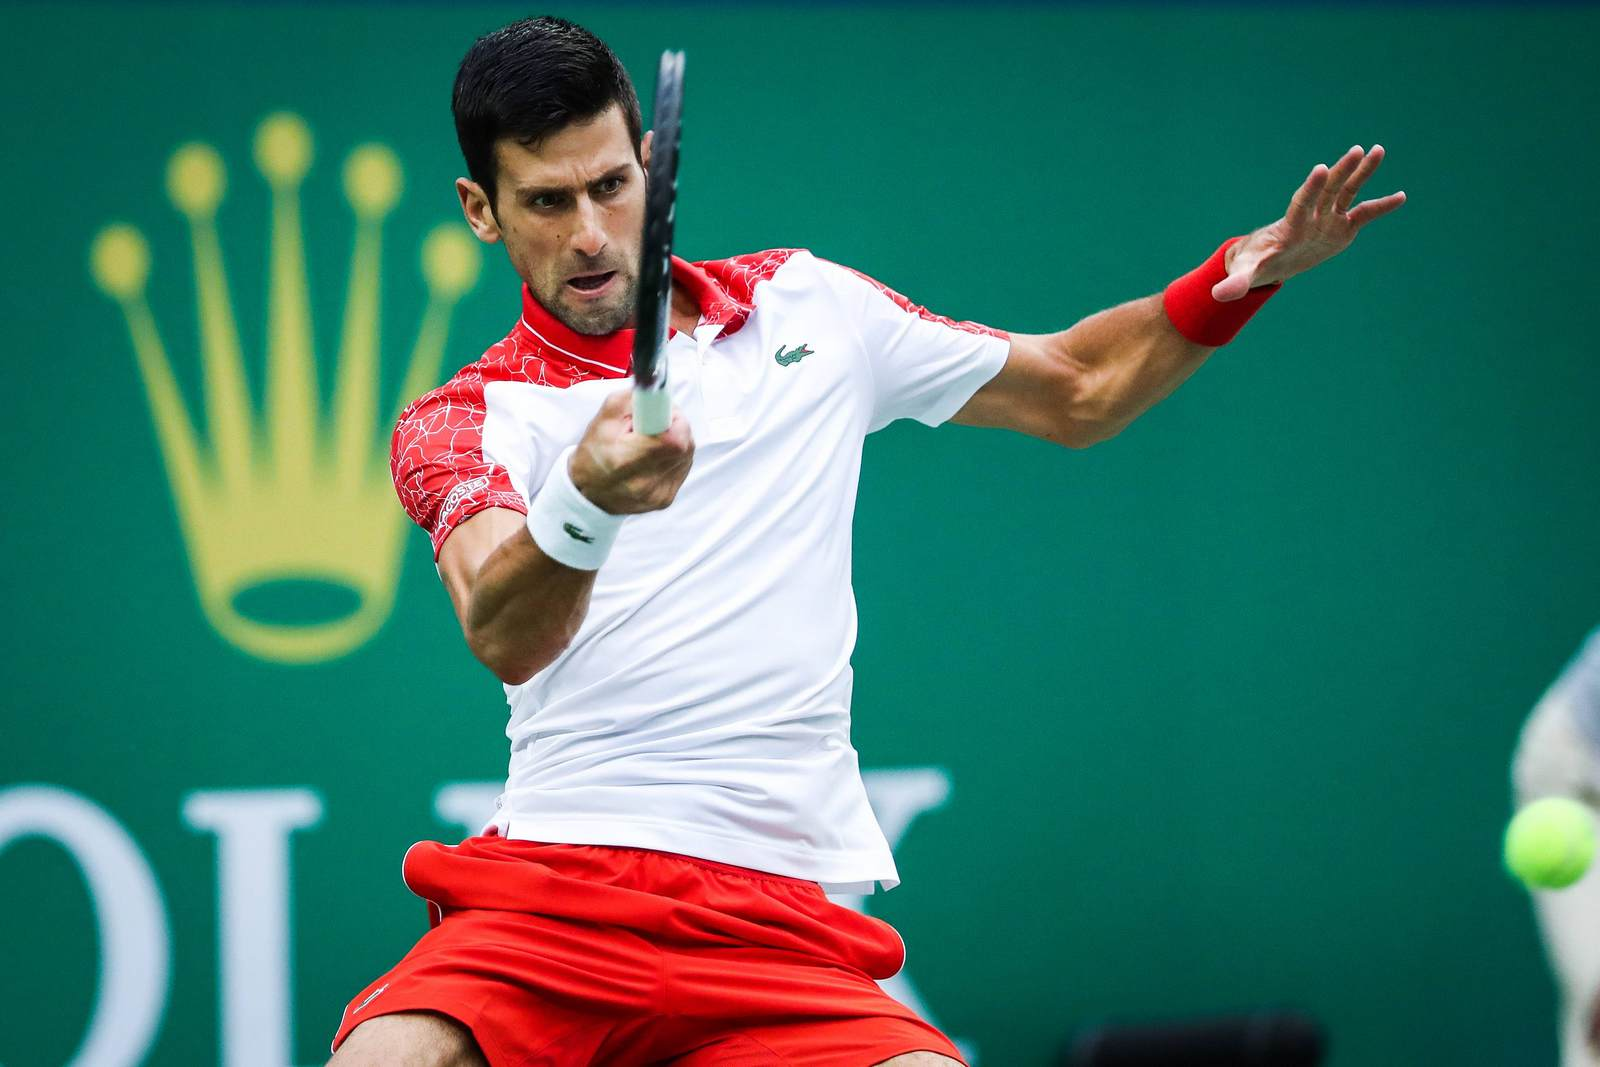 Novak Djokovic beim Return